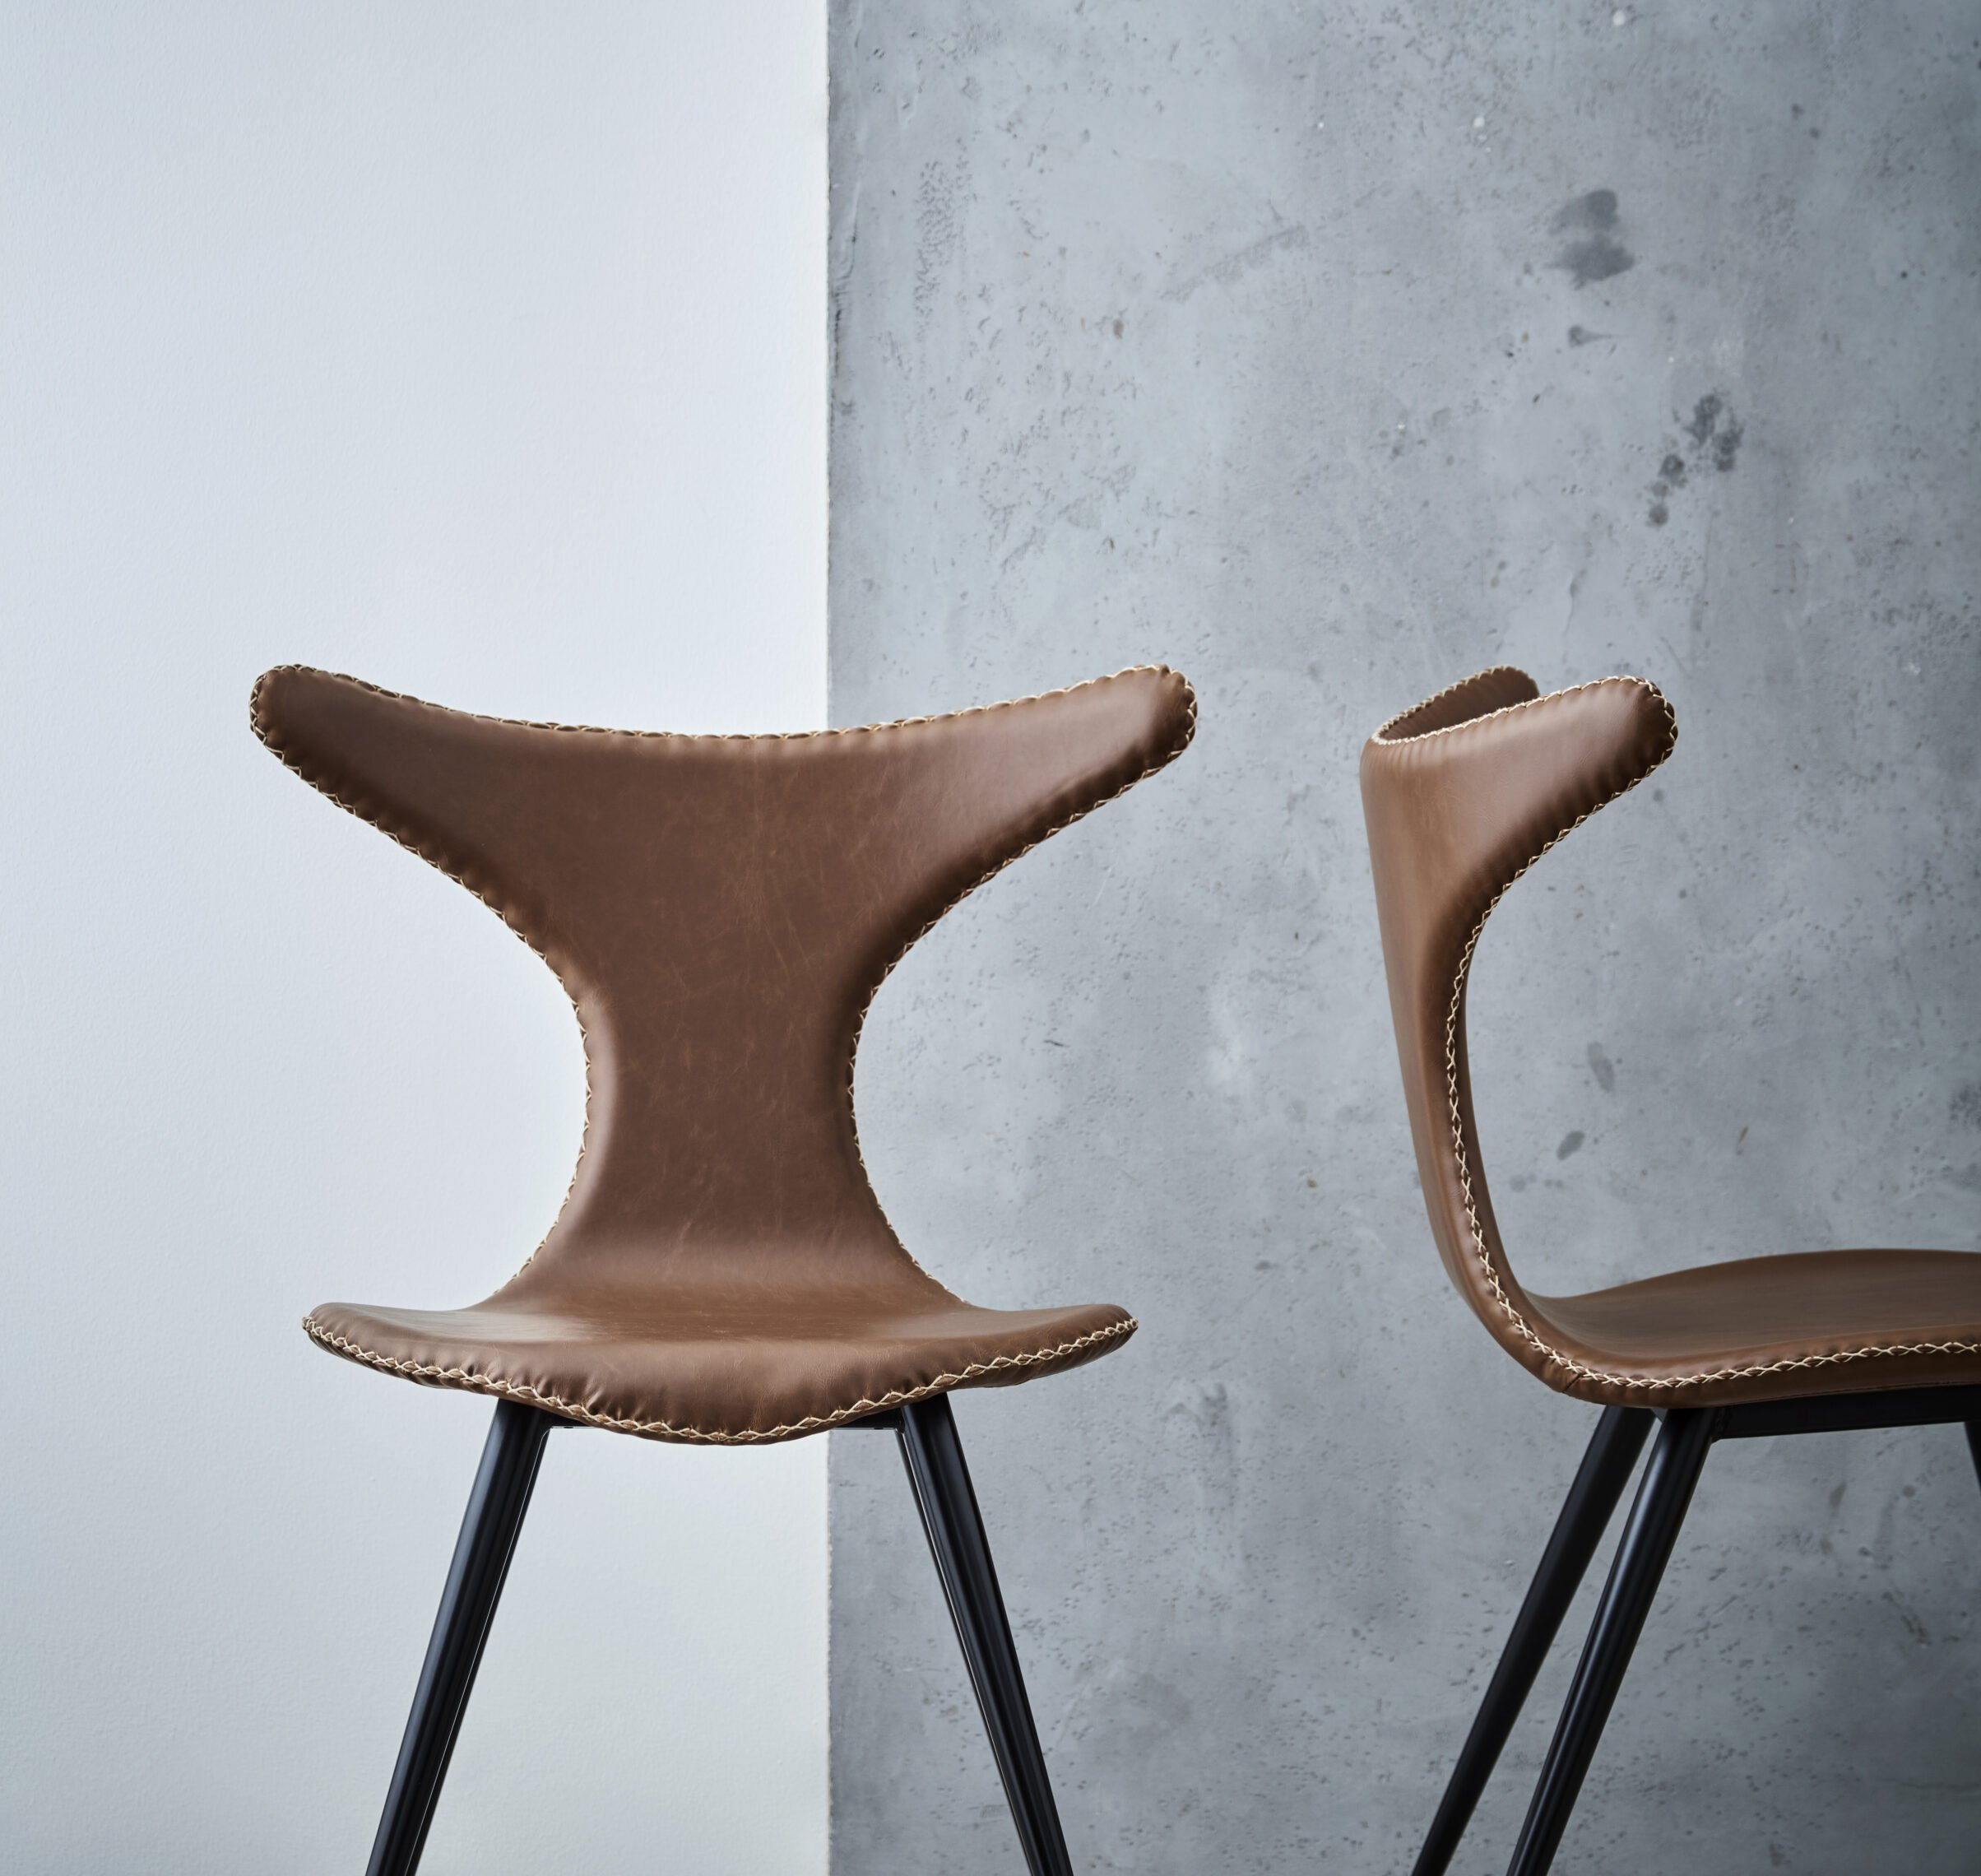 dolphin-chair-vintage-light-brown-art-leather-with-black-conical-metal-legs-100295515-mood-lifestyle-01